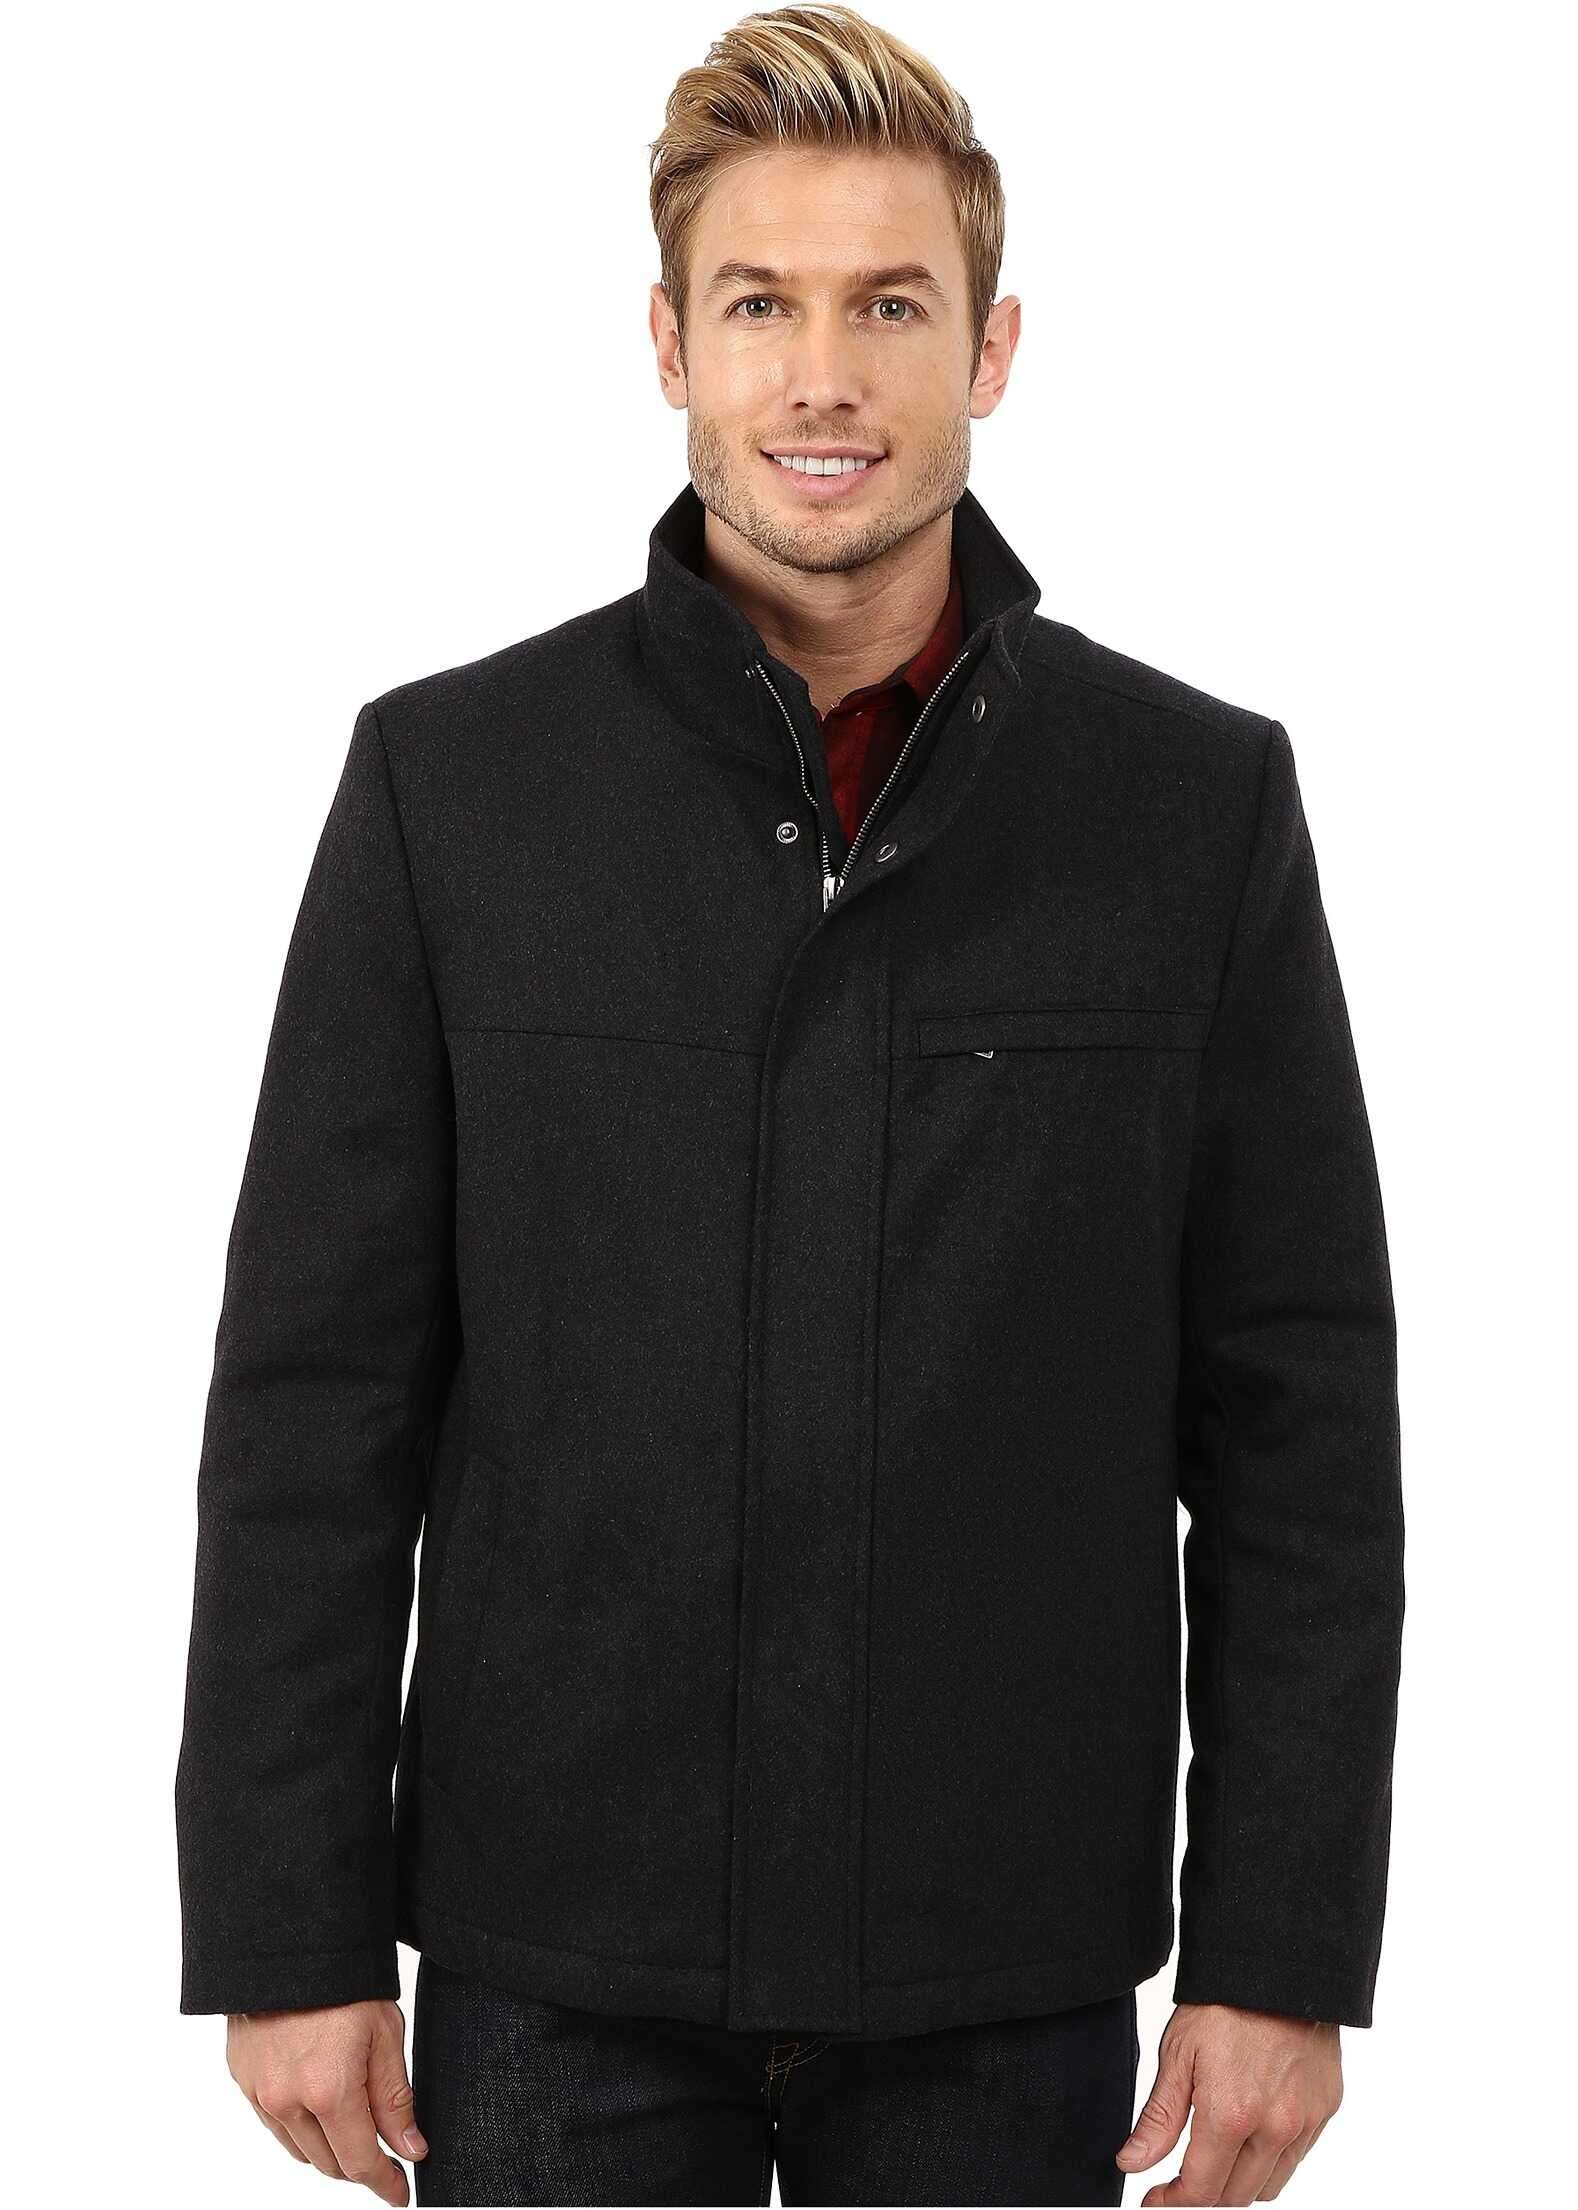 IZOD Wool Jacket with Color Trim Charcoal